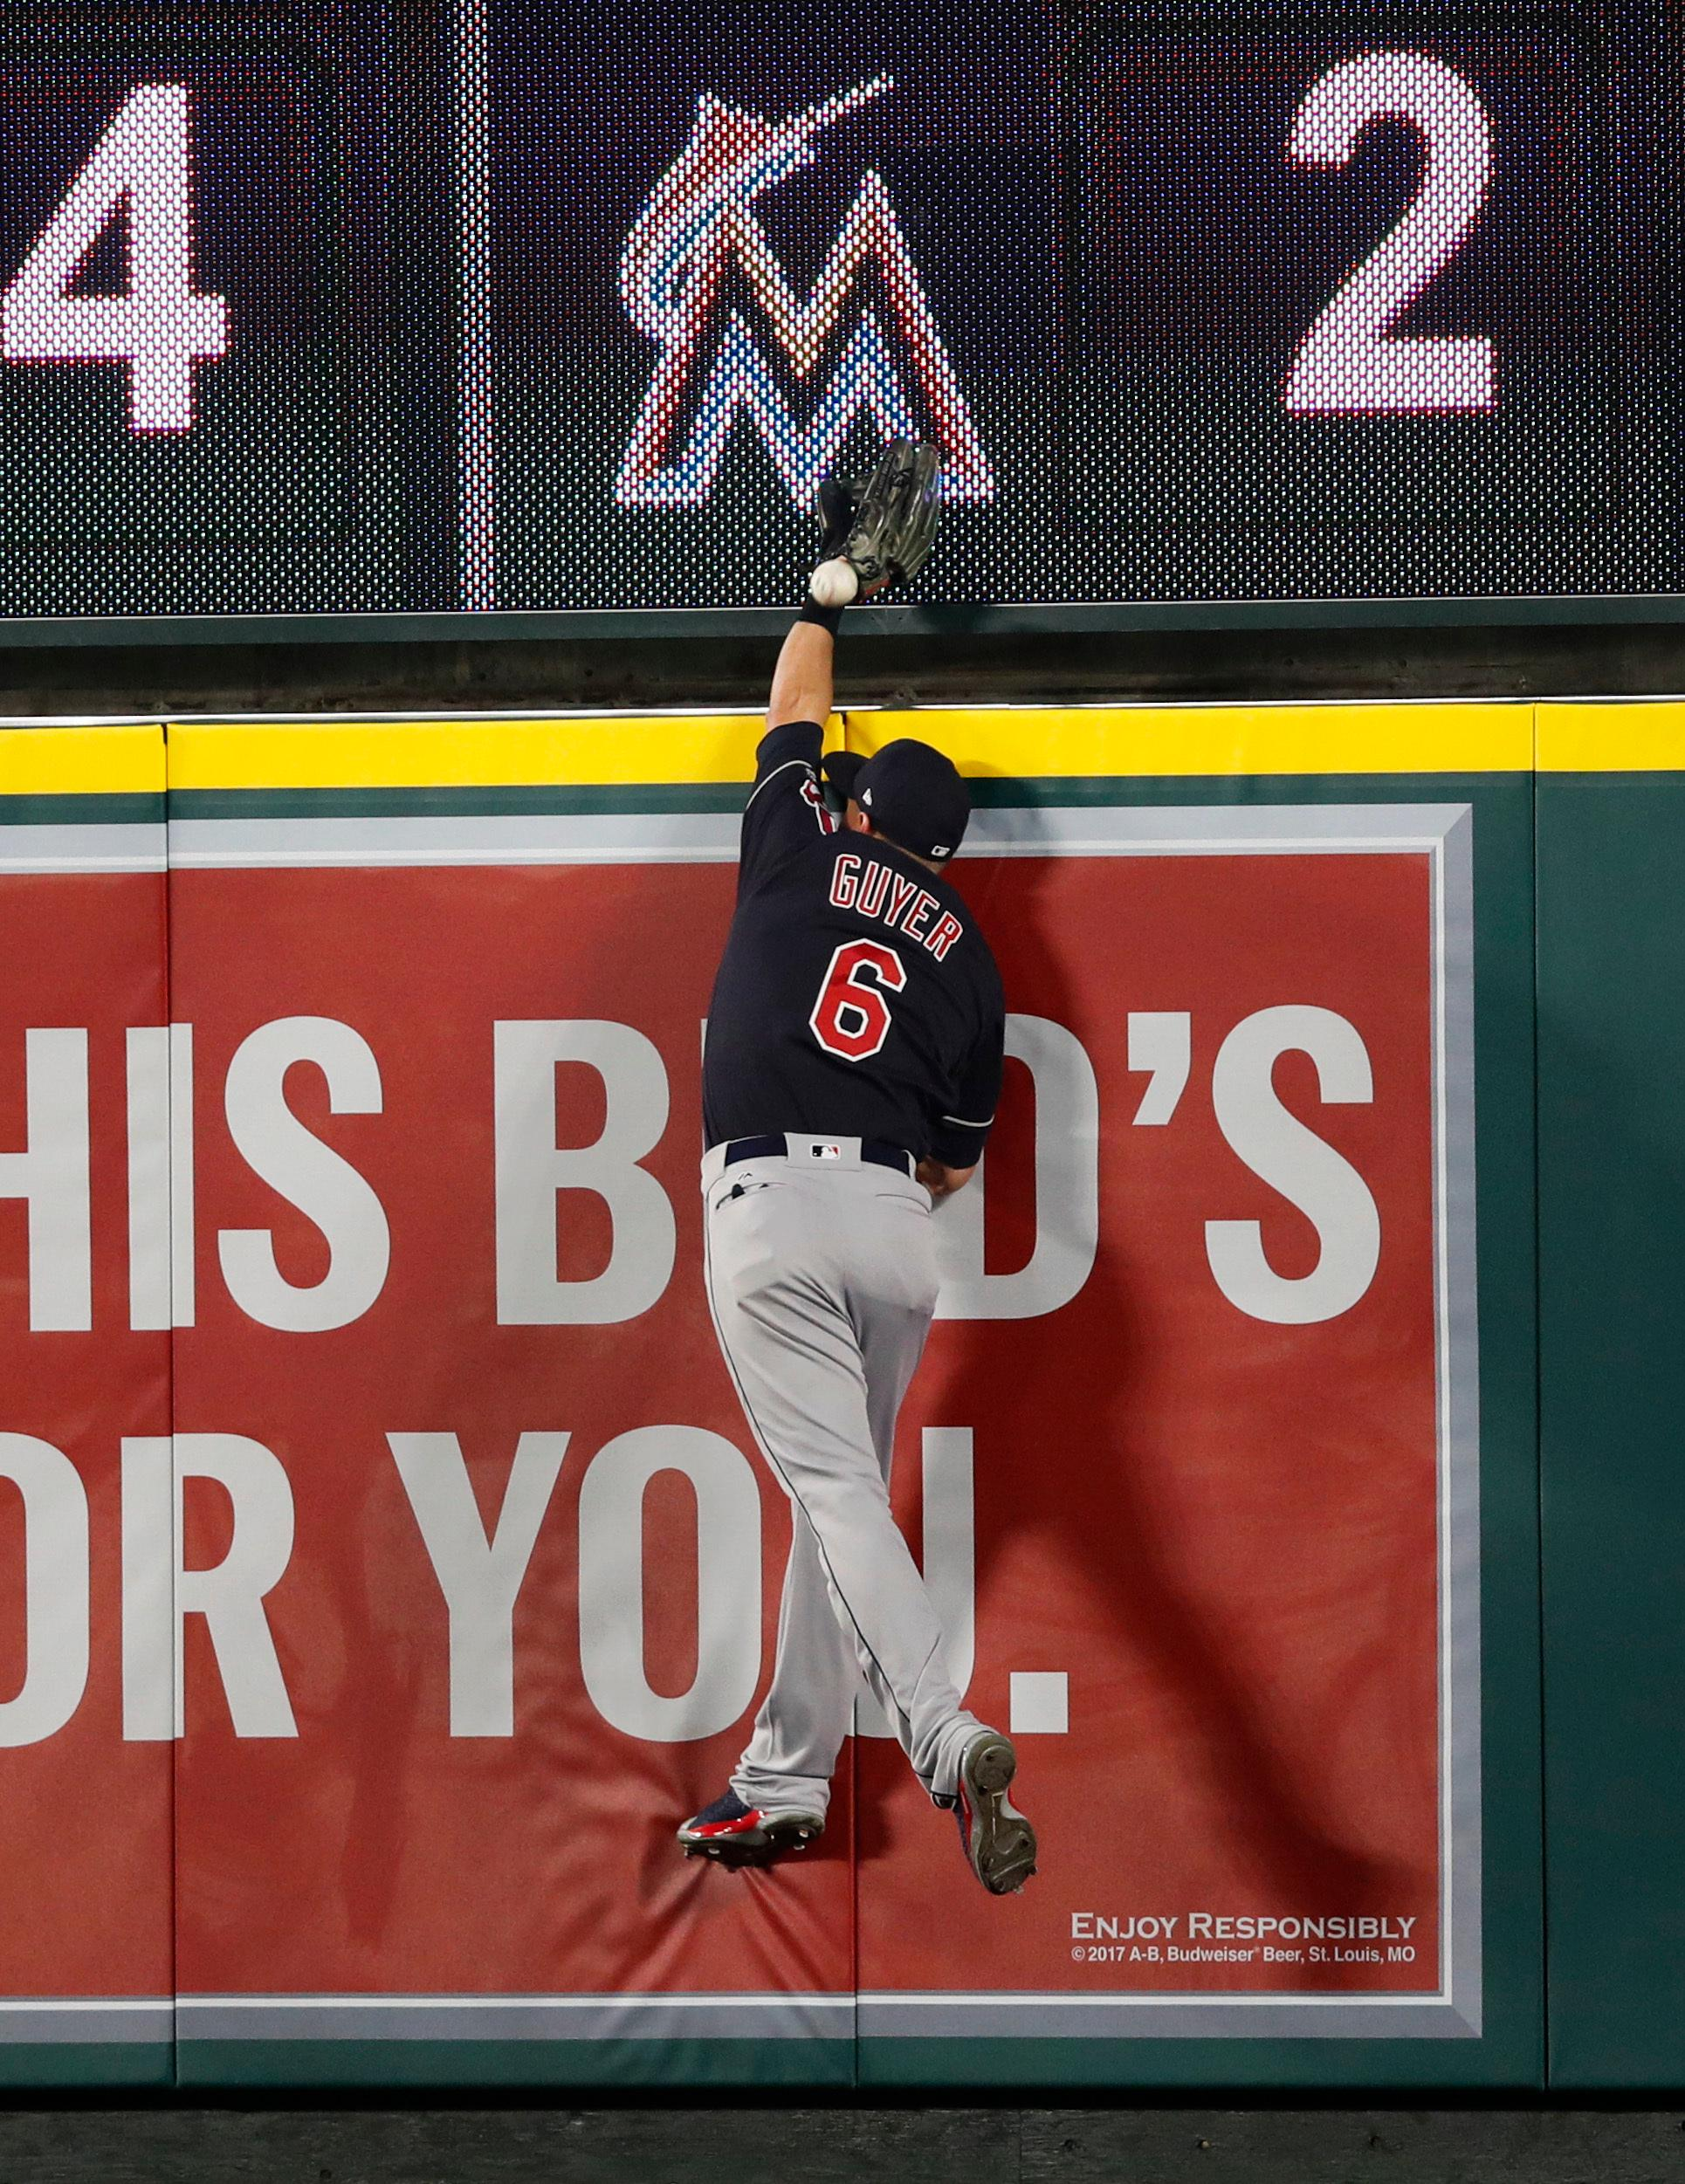 Cleveland Indians' Brandon Guyer can't catch a ball hit by Los Angeles Angels' Rene Rivera during the eighth inning of a baseball game, Tuesday, April 3, 2018, in Anaheim, Calif. The hit was ruled a home run after a video review. (AP Photo/Jae C. Hong)